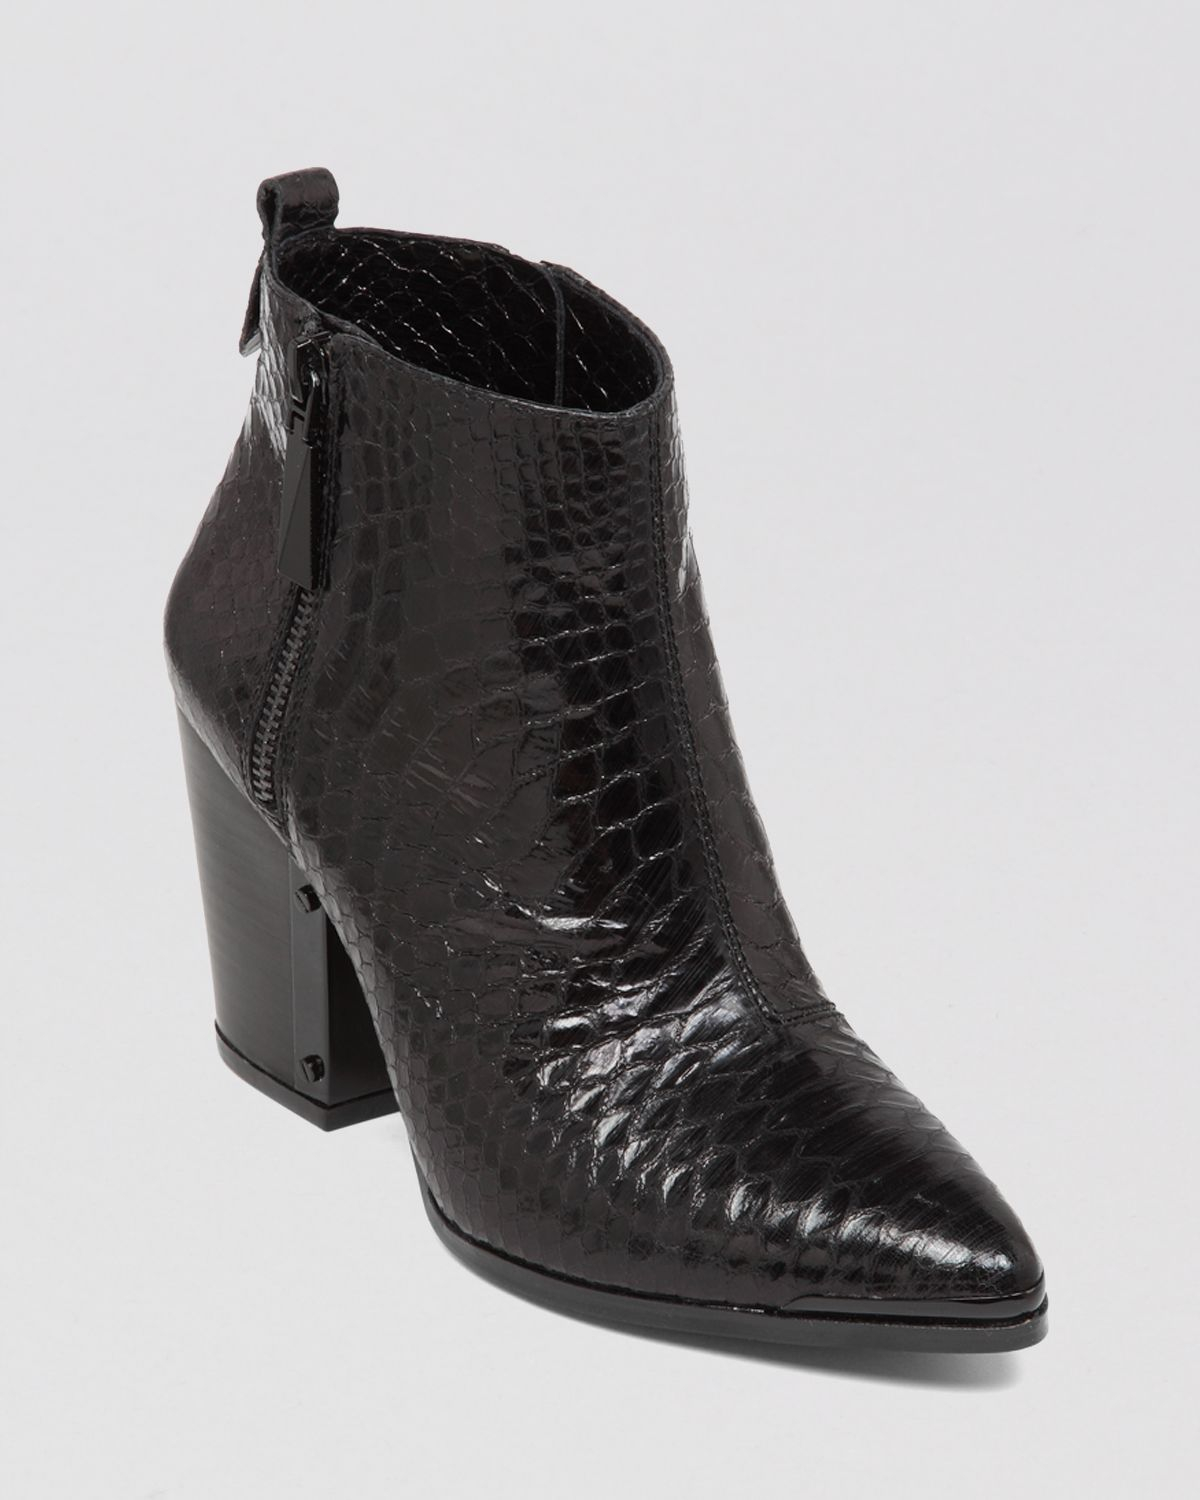 Vince Camuto Pointed Toe Booties Amori High Heel In Black